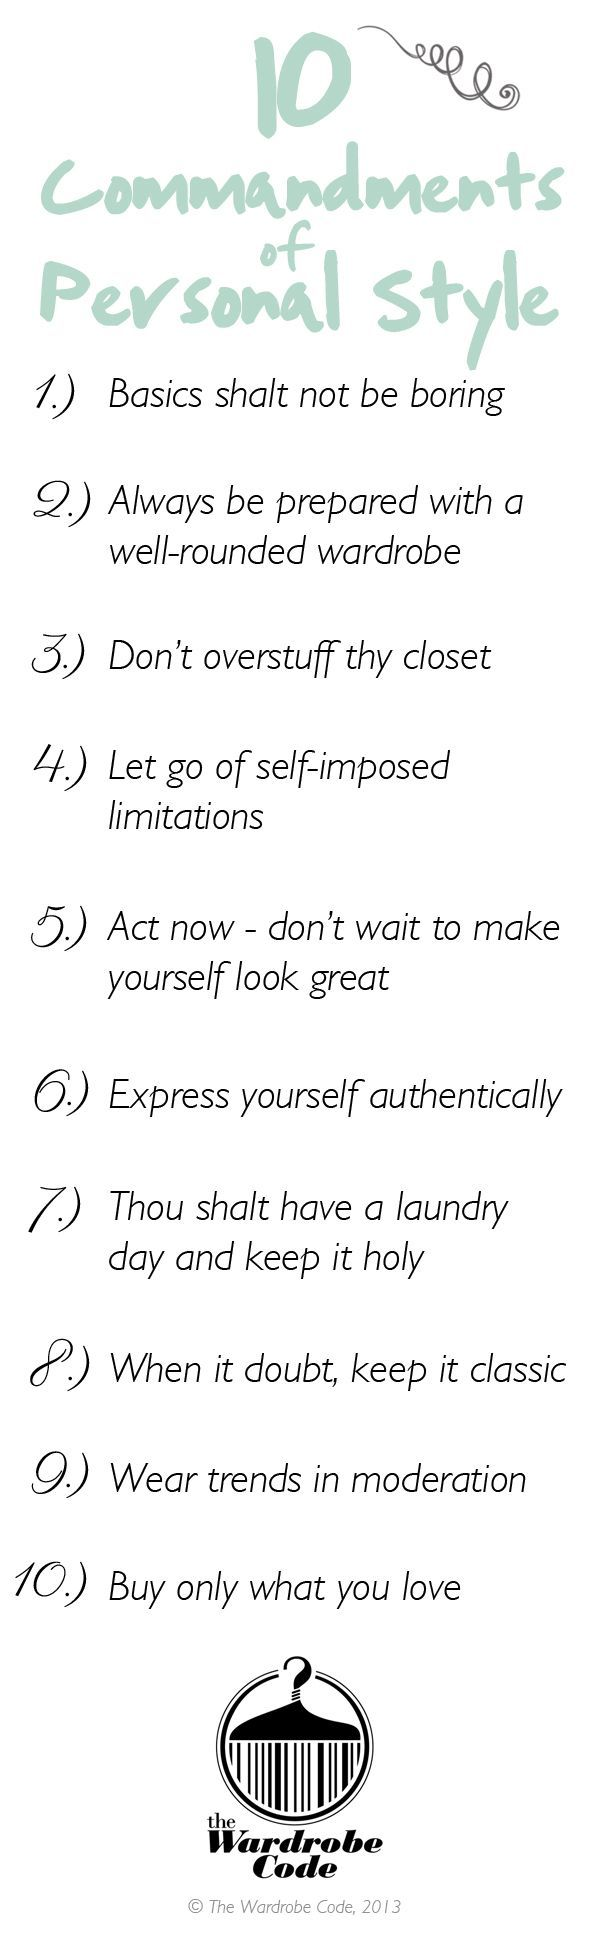 10 commandments of personal style